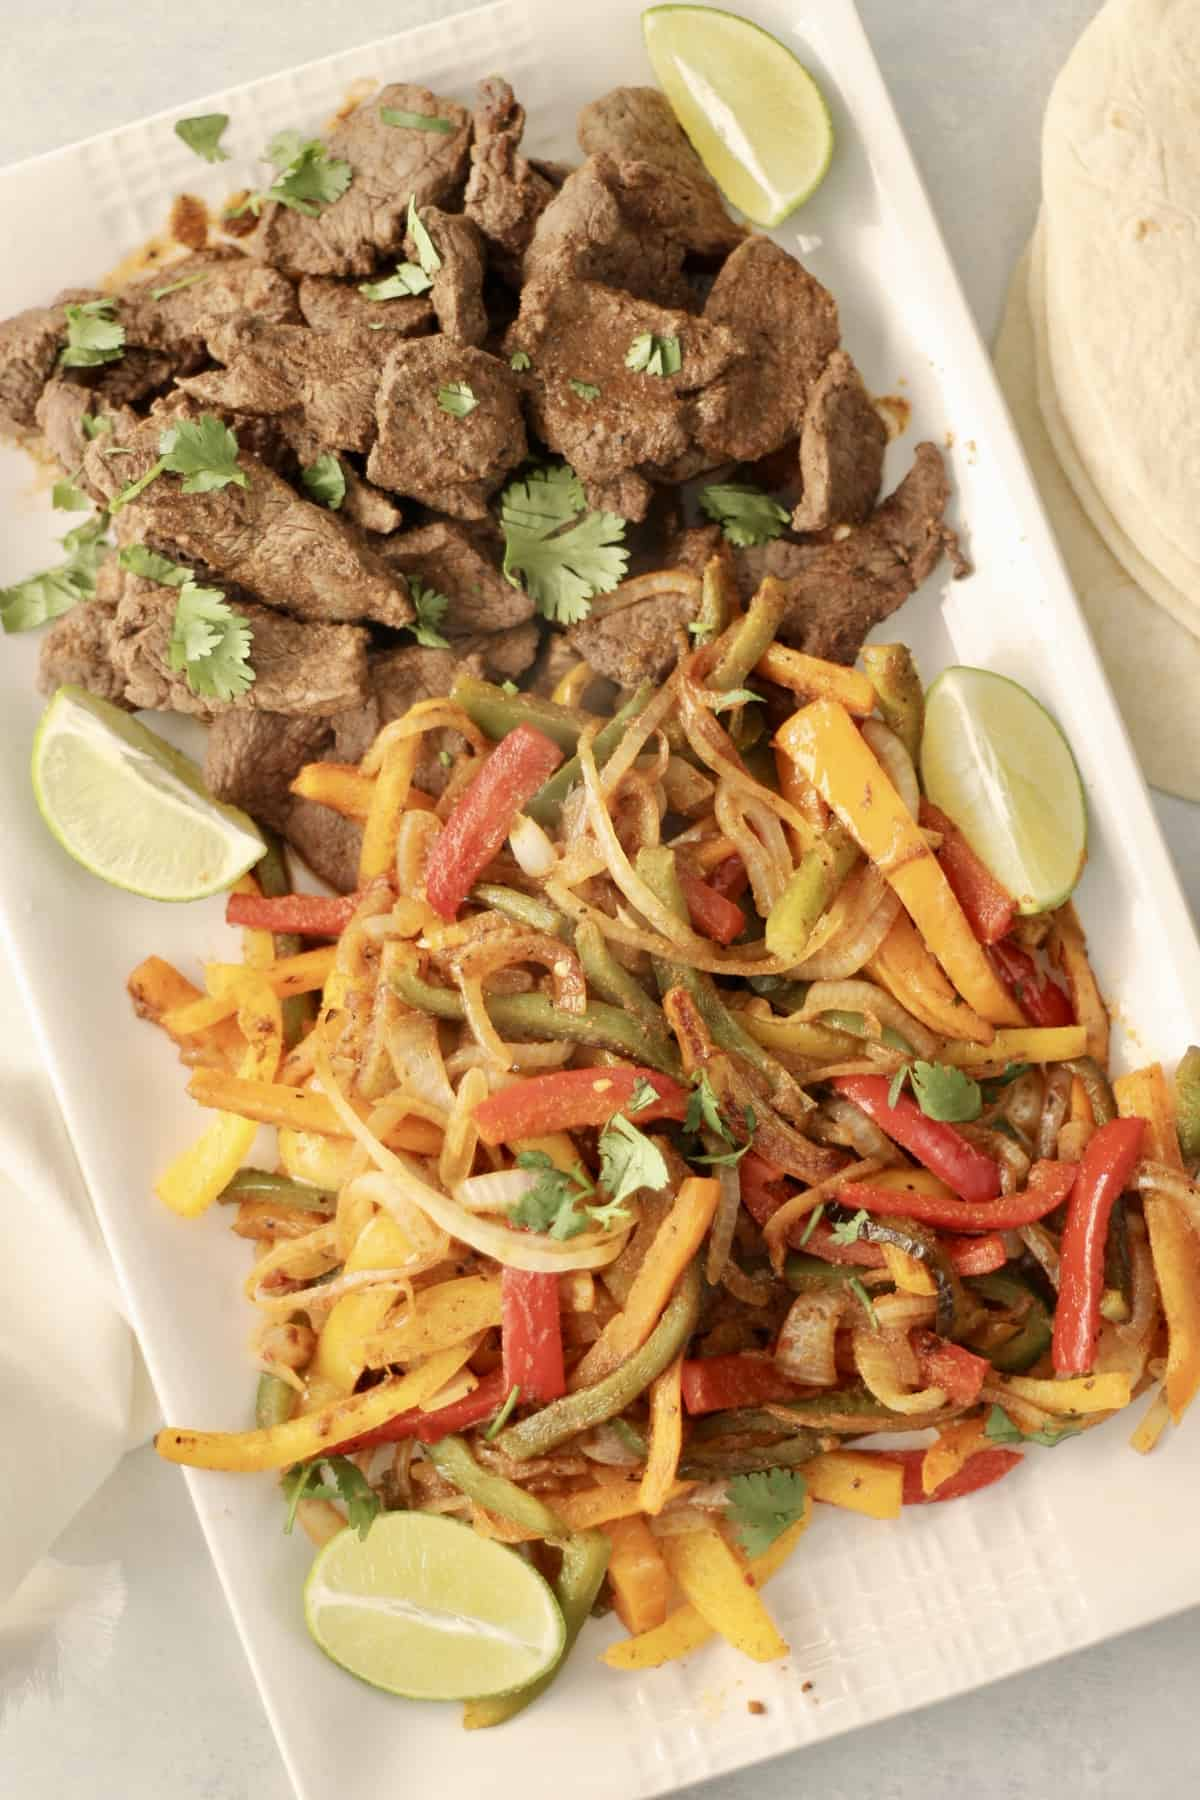 Butcherbox steak fajitas on a platter